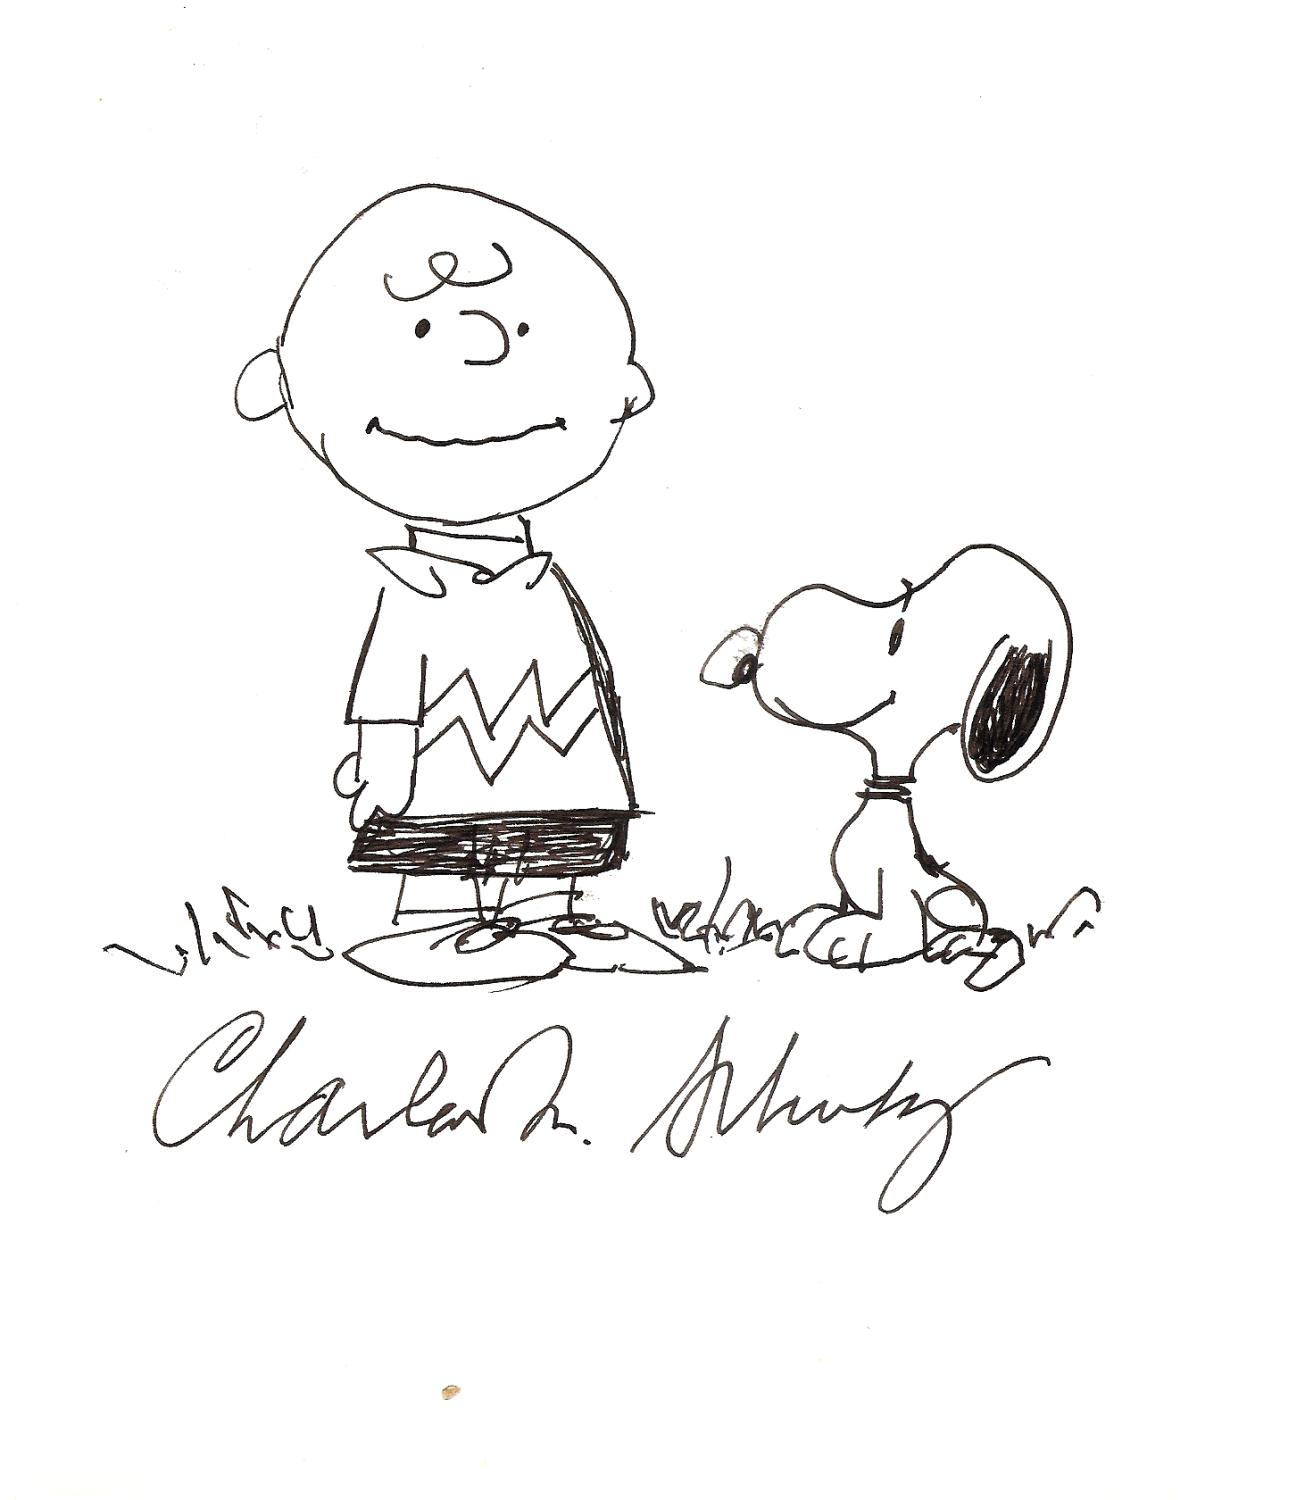 original ink drawing of Charlie Brown and Snoopy, signed